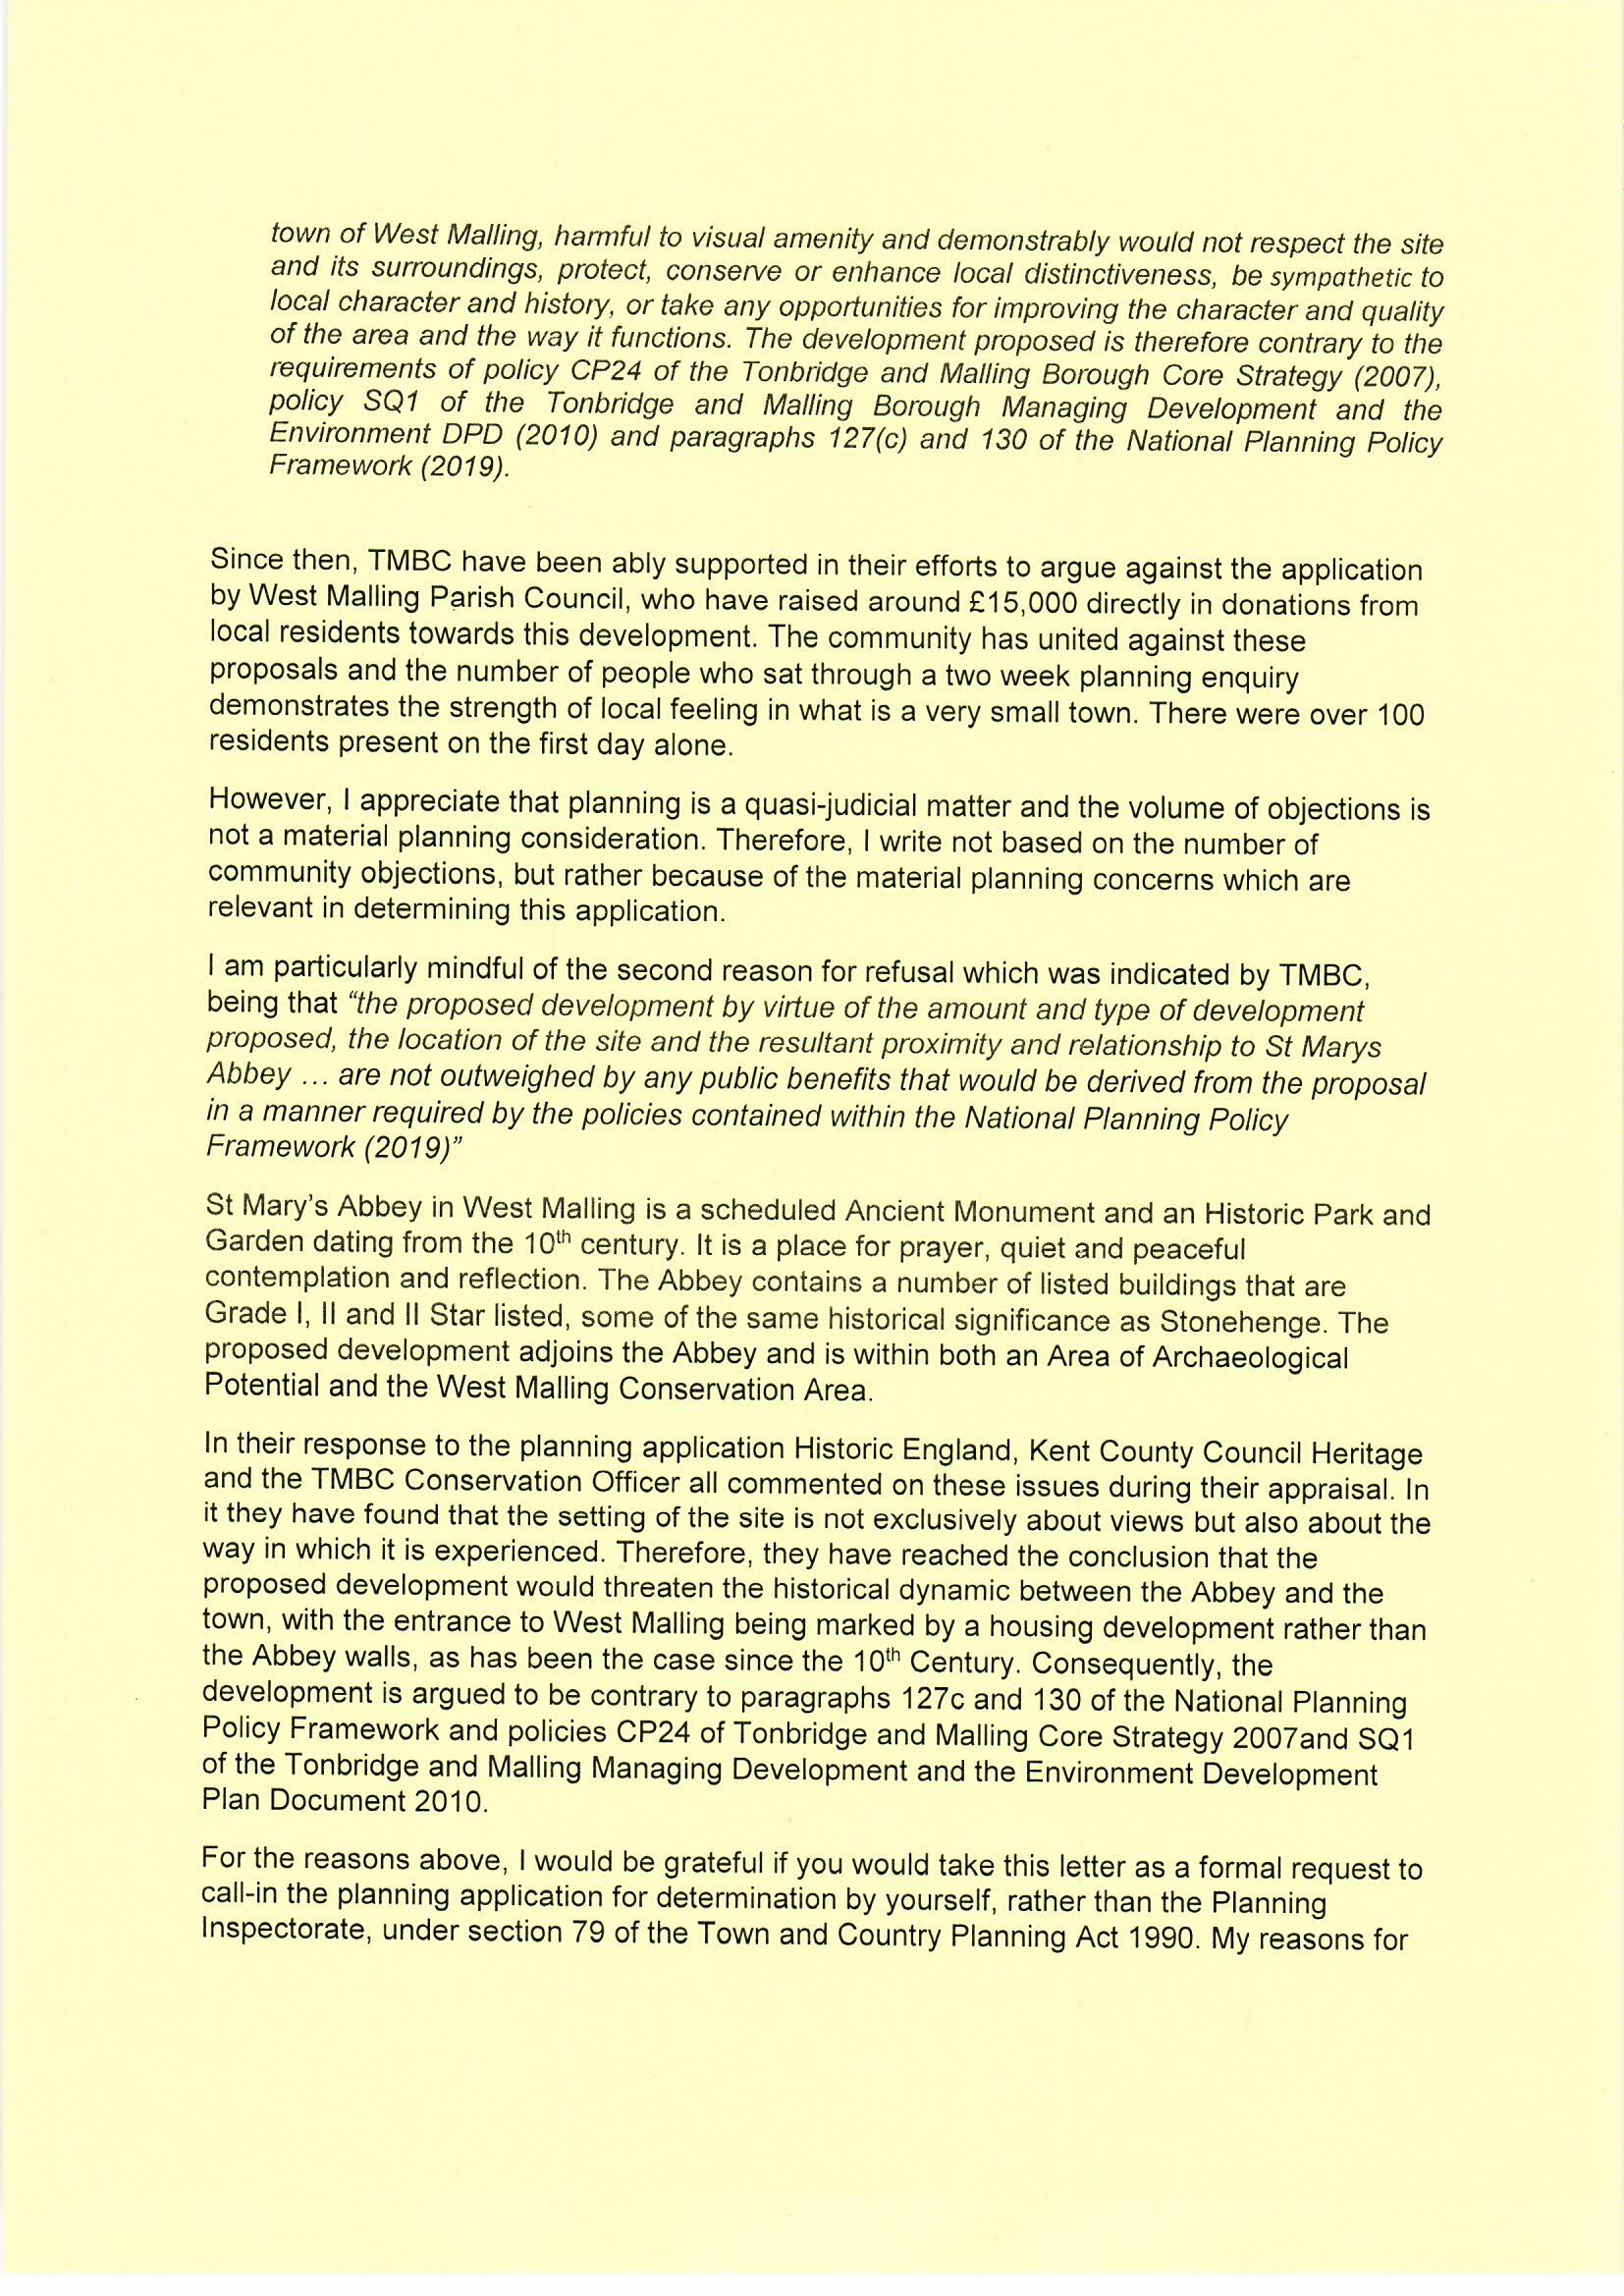 20190905 - Tom Tugendhat to Robert Jenrick, Land east of Lavenders Road and Swan Street, St Mary's Abbey - call in request0002.jpg